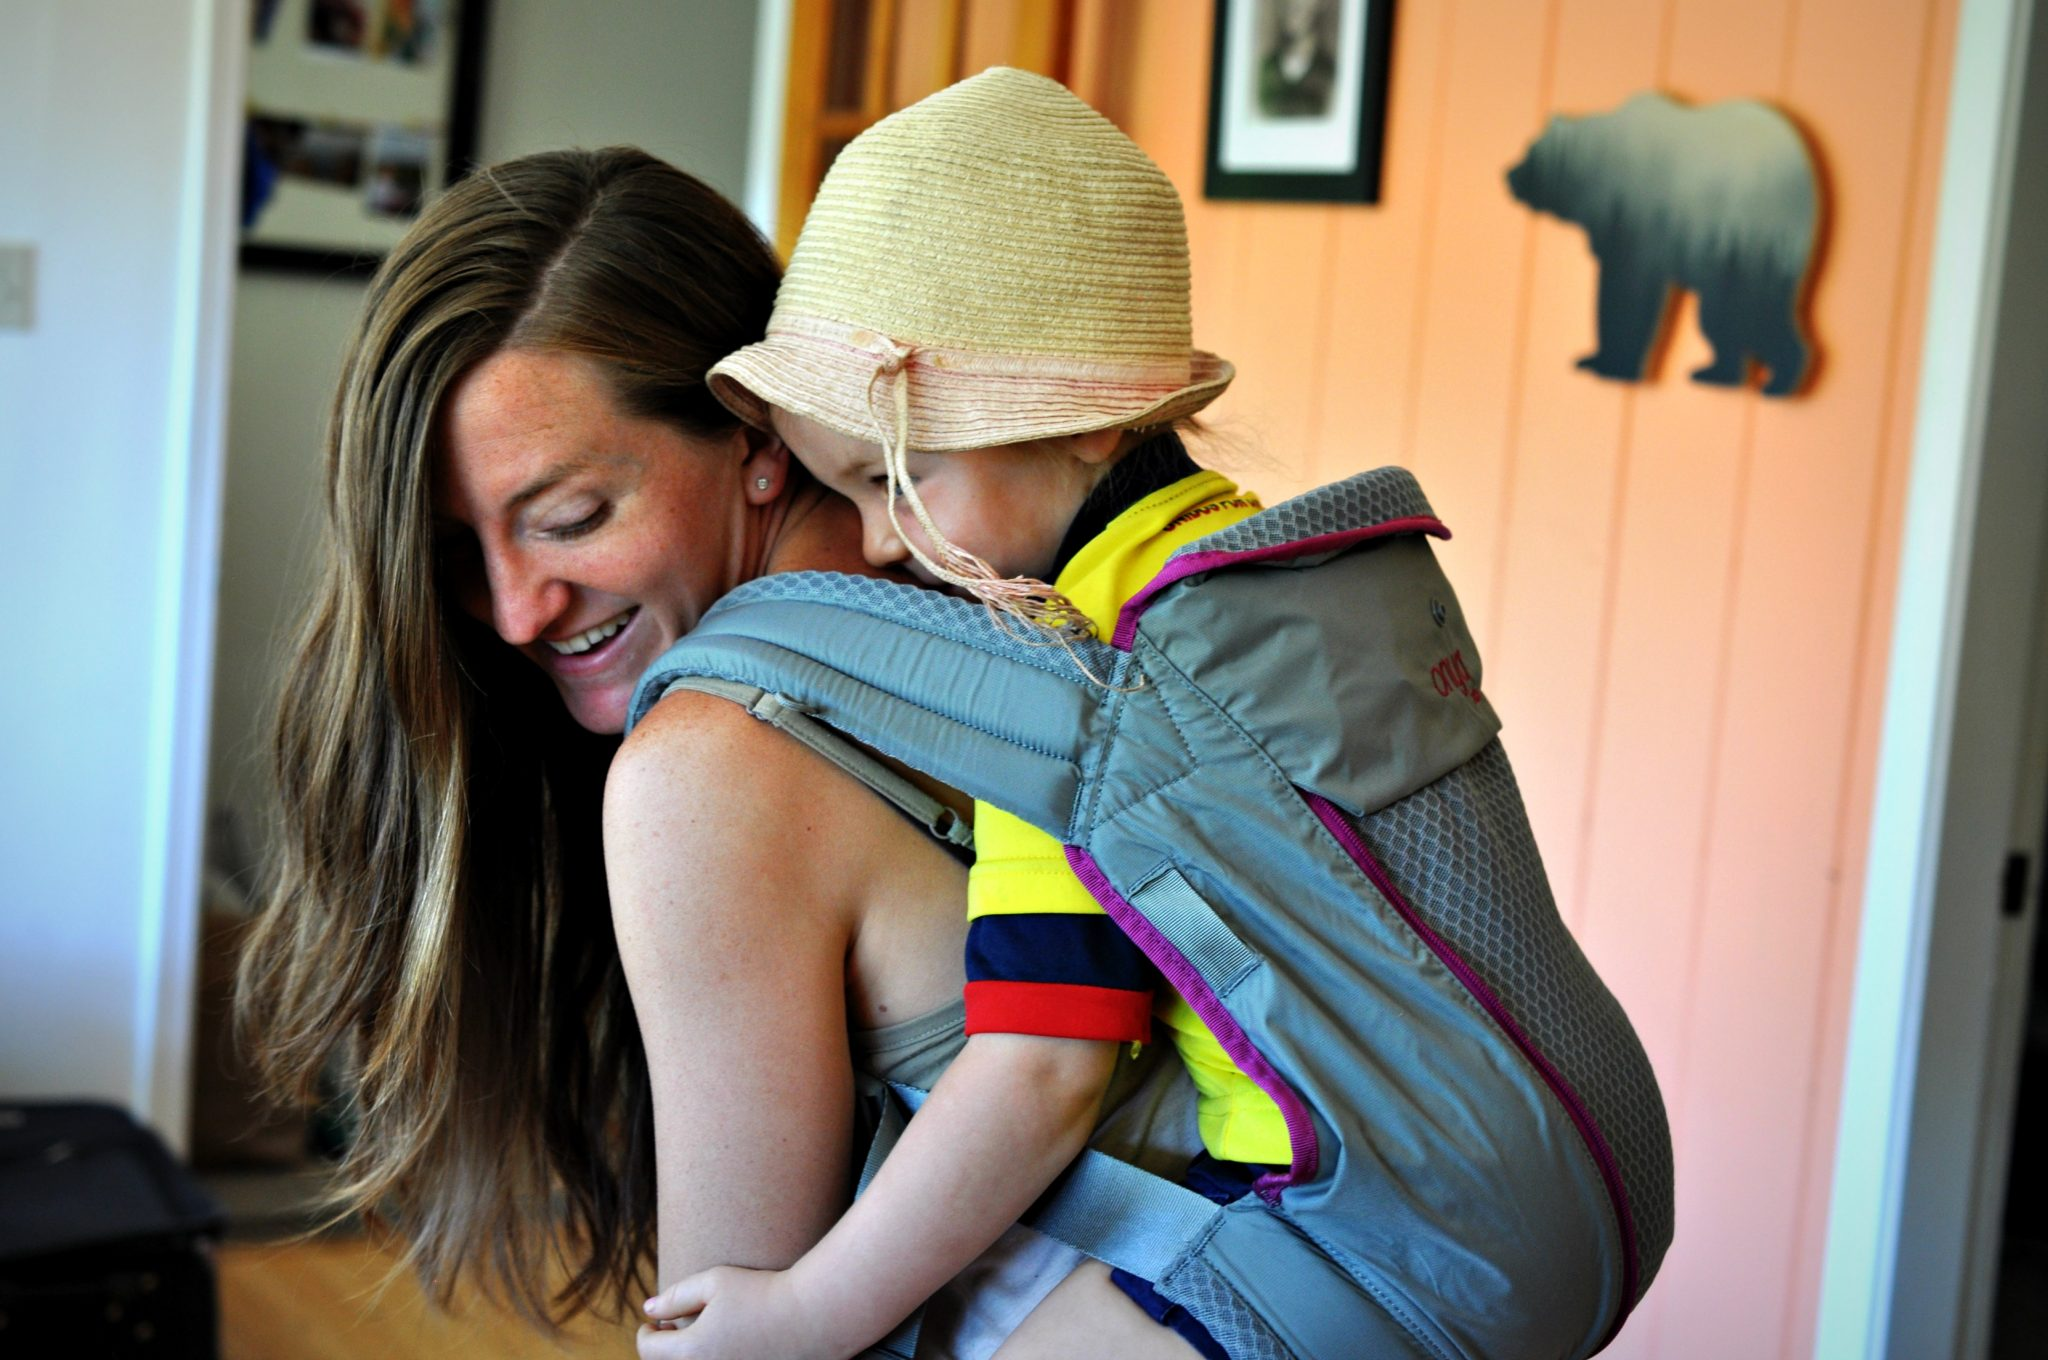 Mother laughing with baby in Onya Carrier